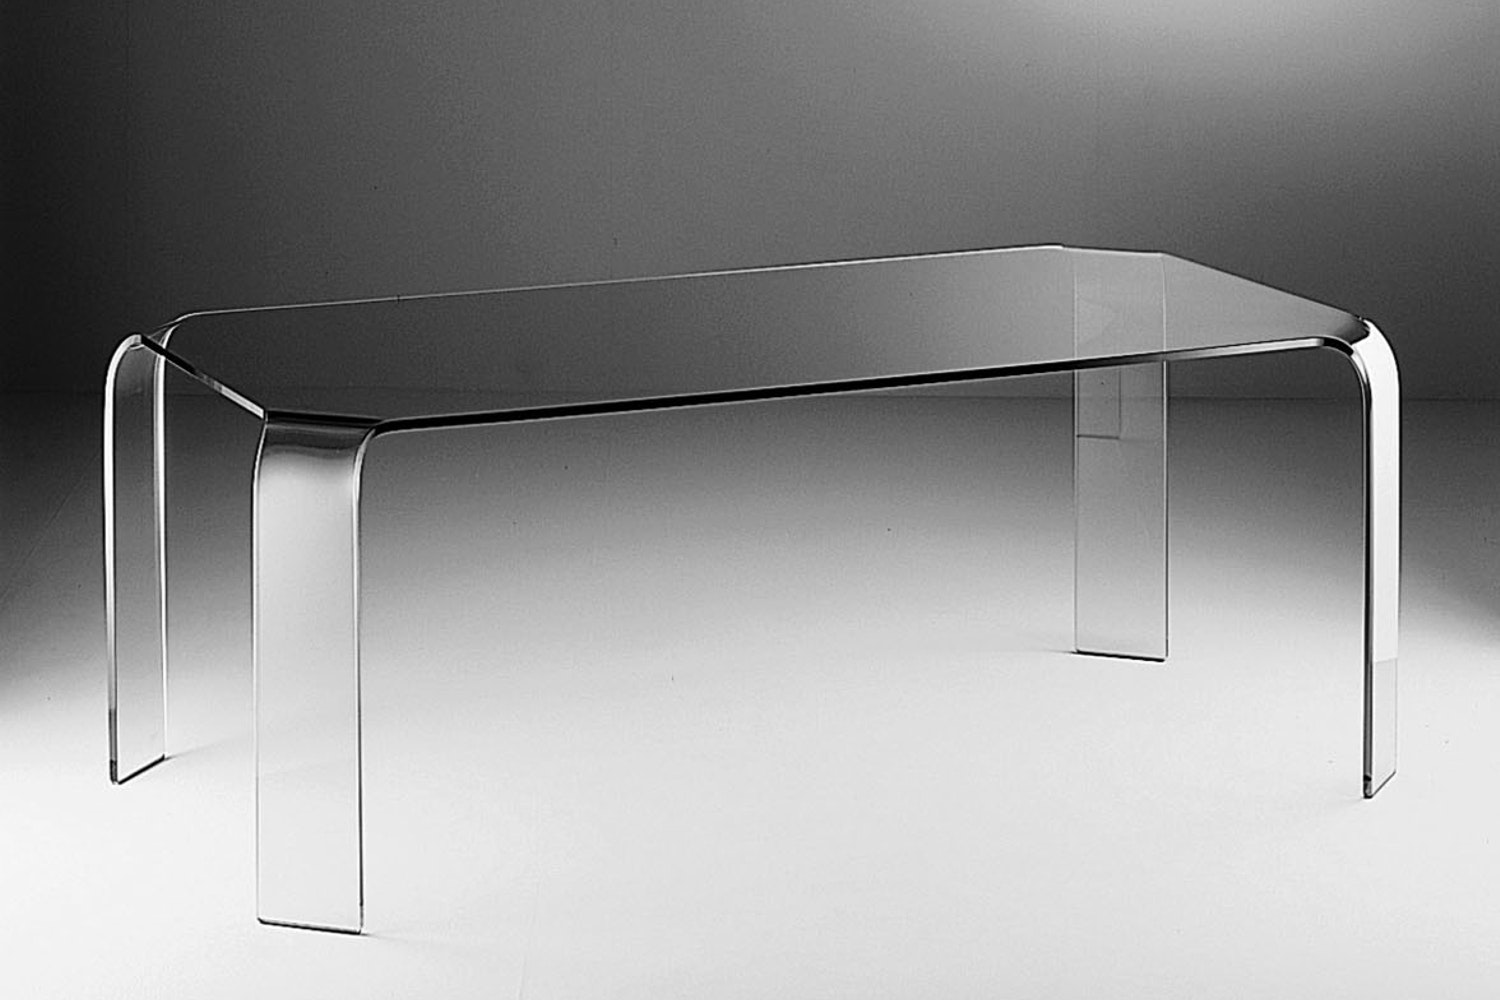 Ragno Table by Vittorio Livi for Fiam Italia